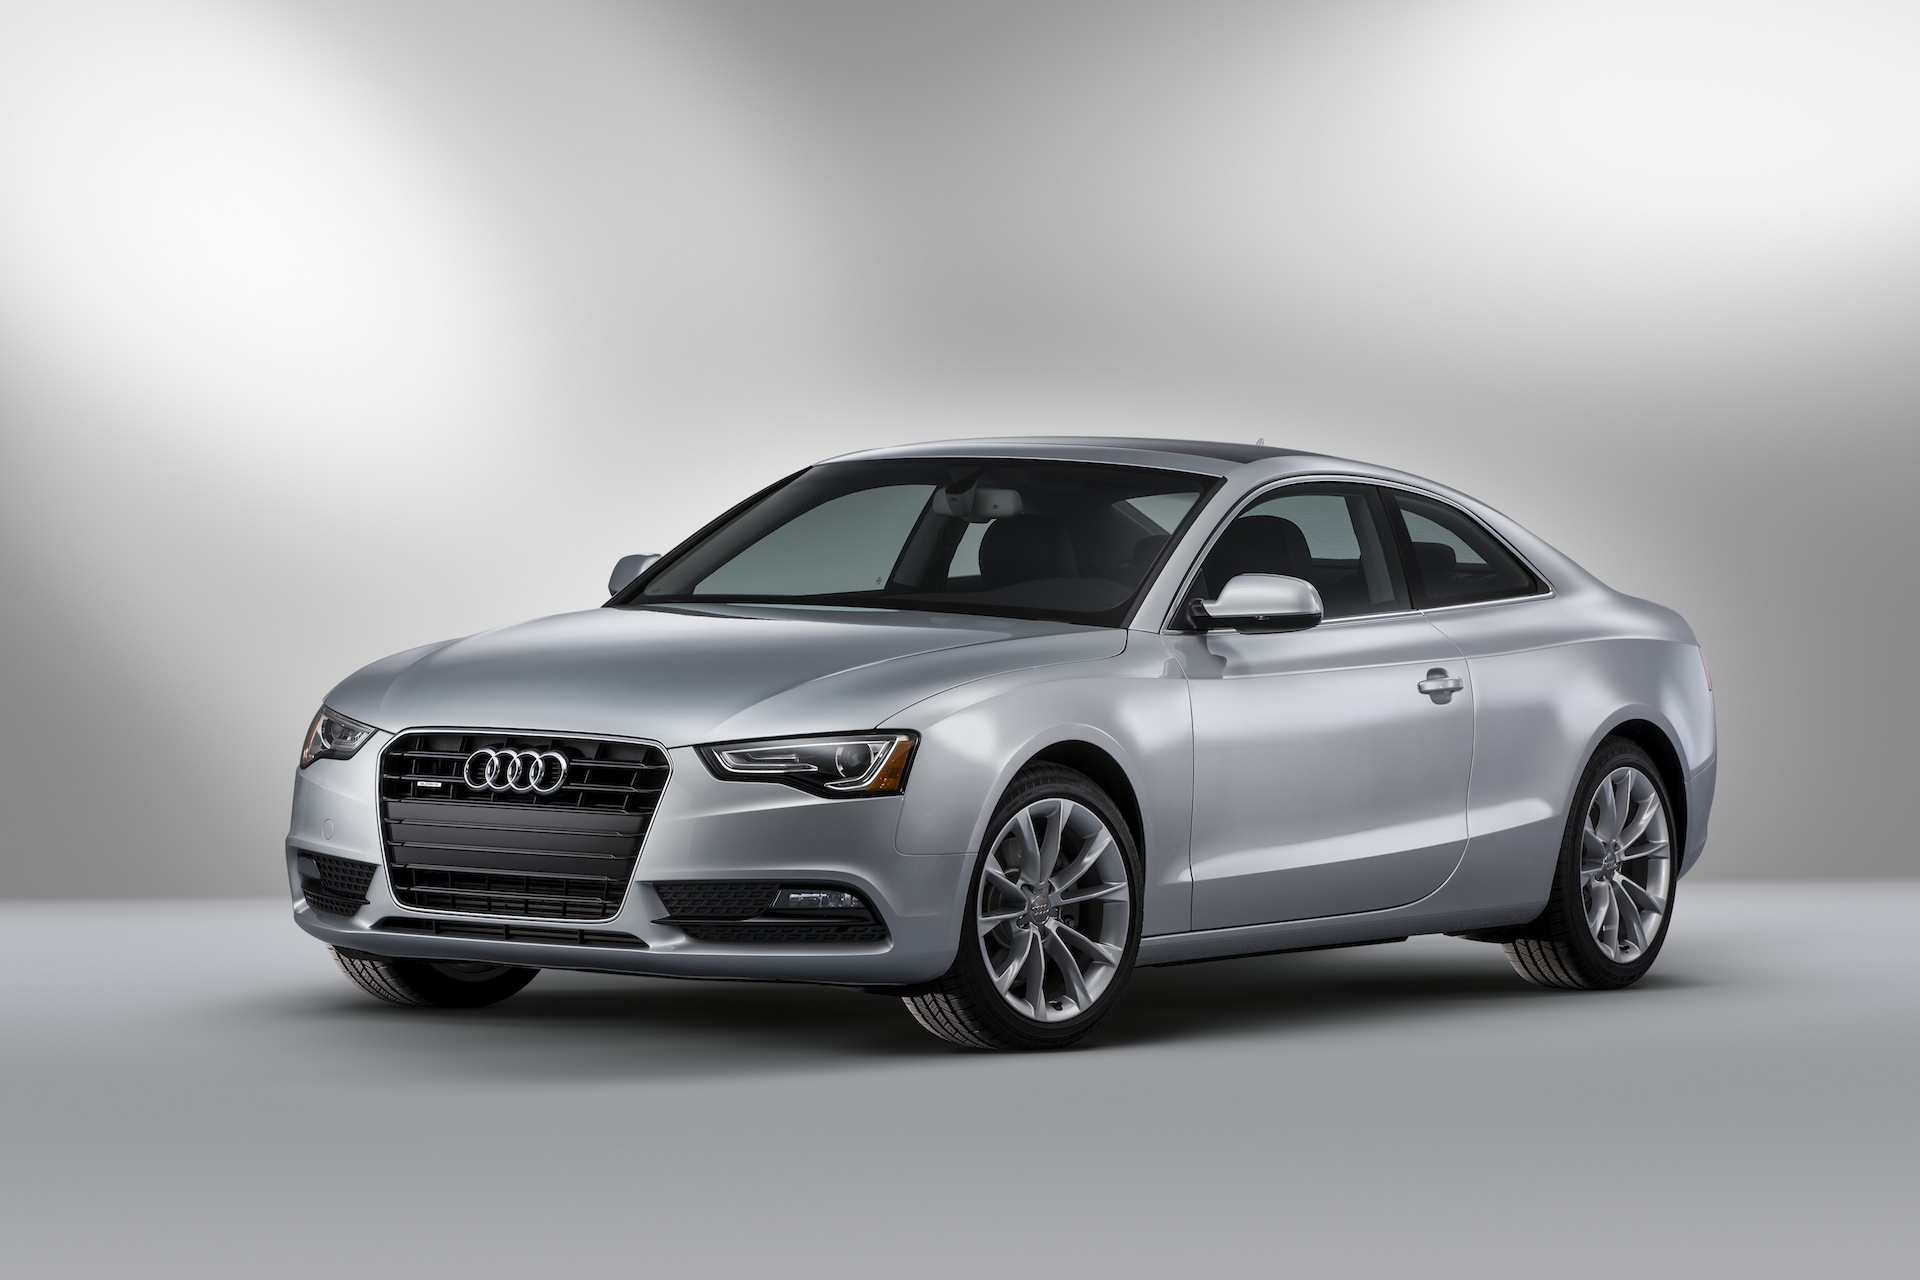 2014 Audi A5 Safety Review And Crash Test Ratings The